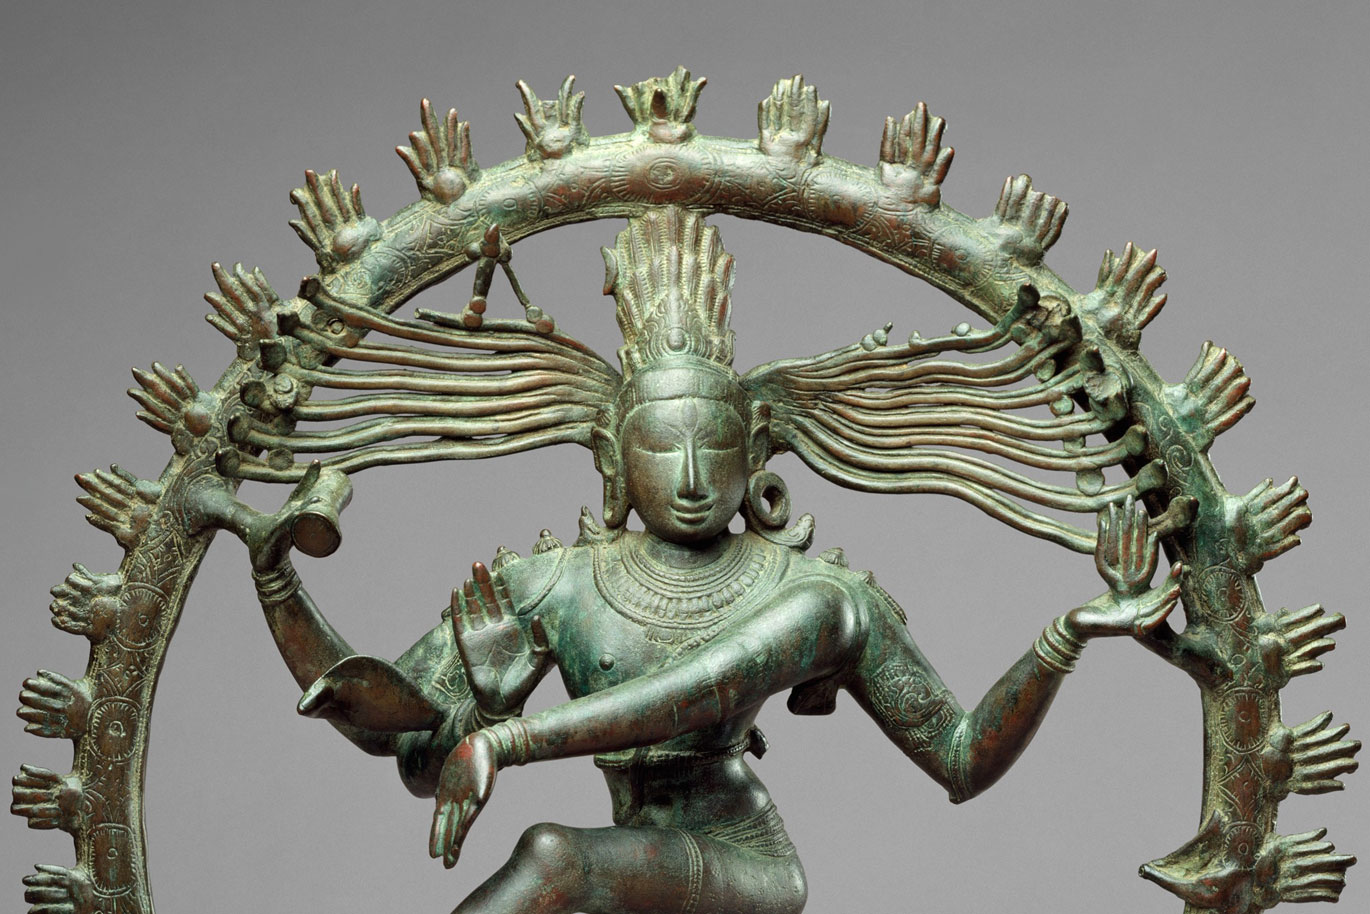 Shiva as Lord of Dance (Nataraja), Indian (Tamil Nadu)